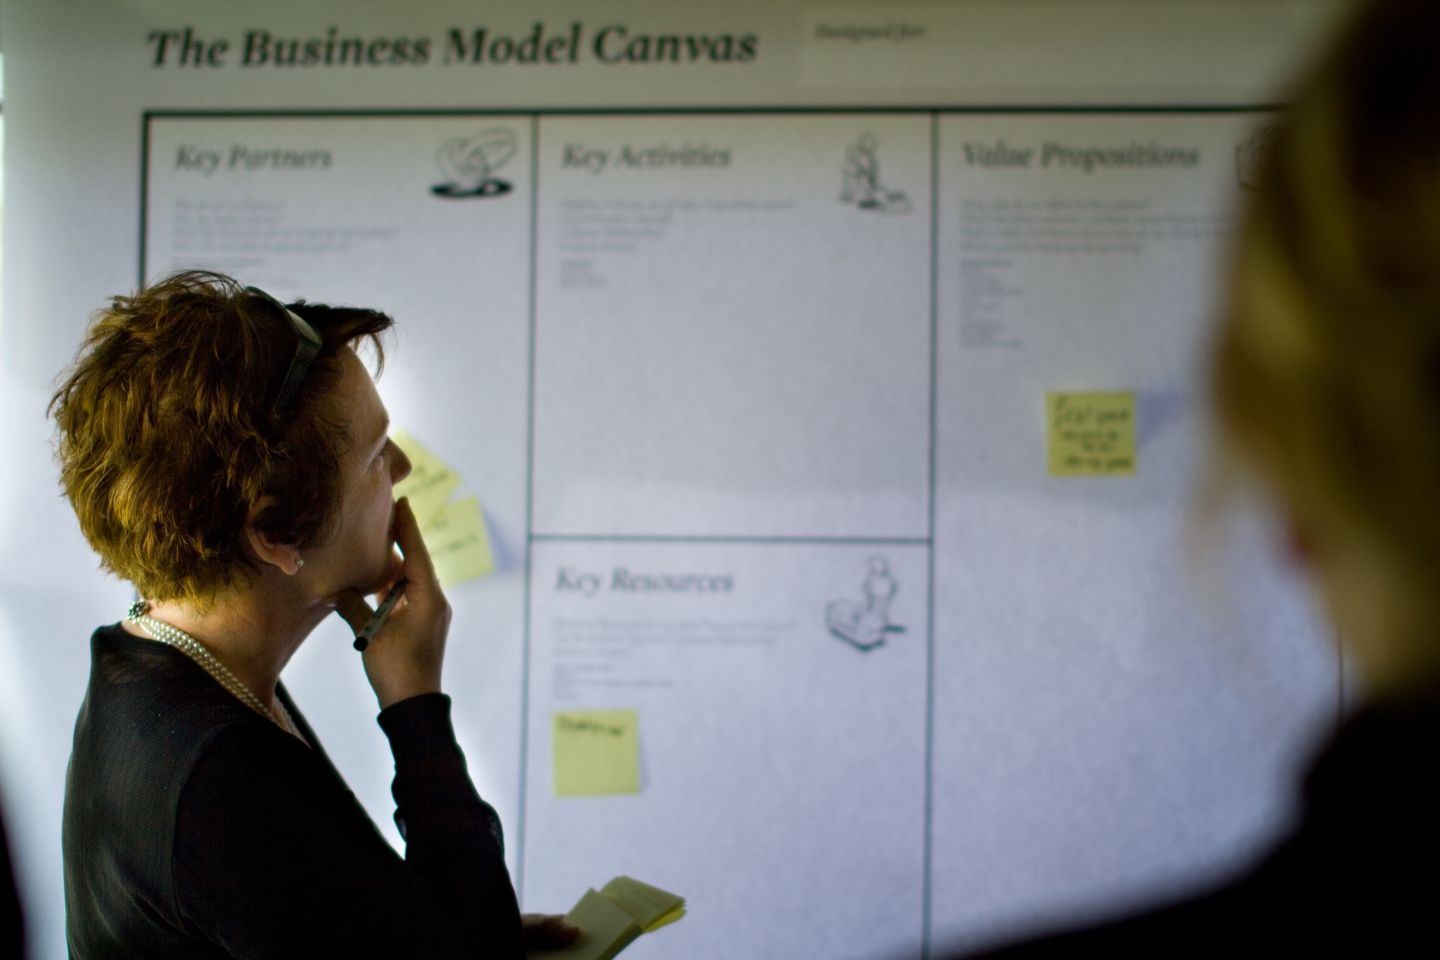 Business Modeling Canvas Image